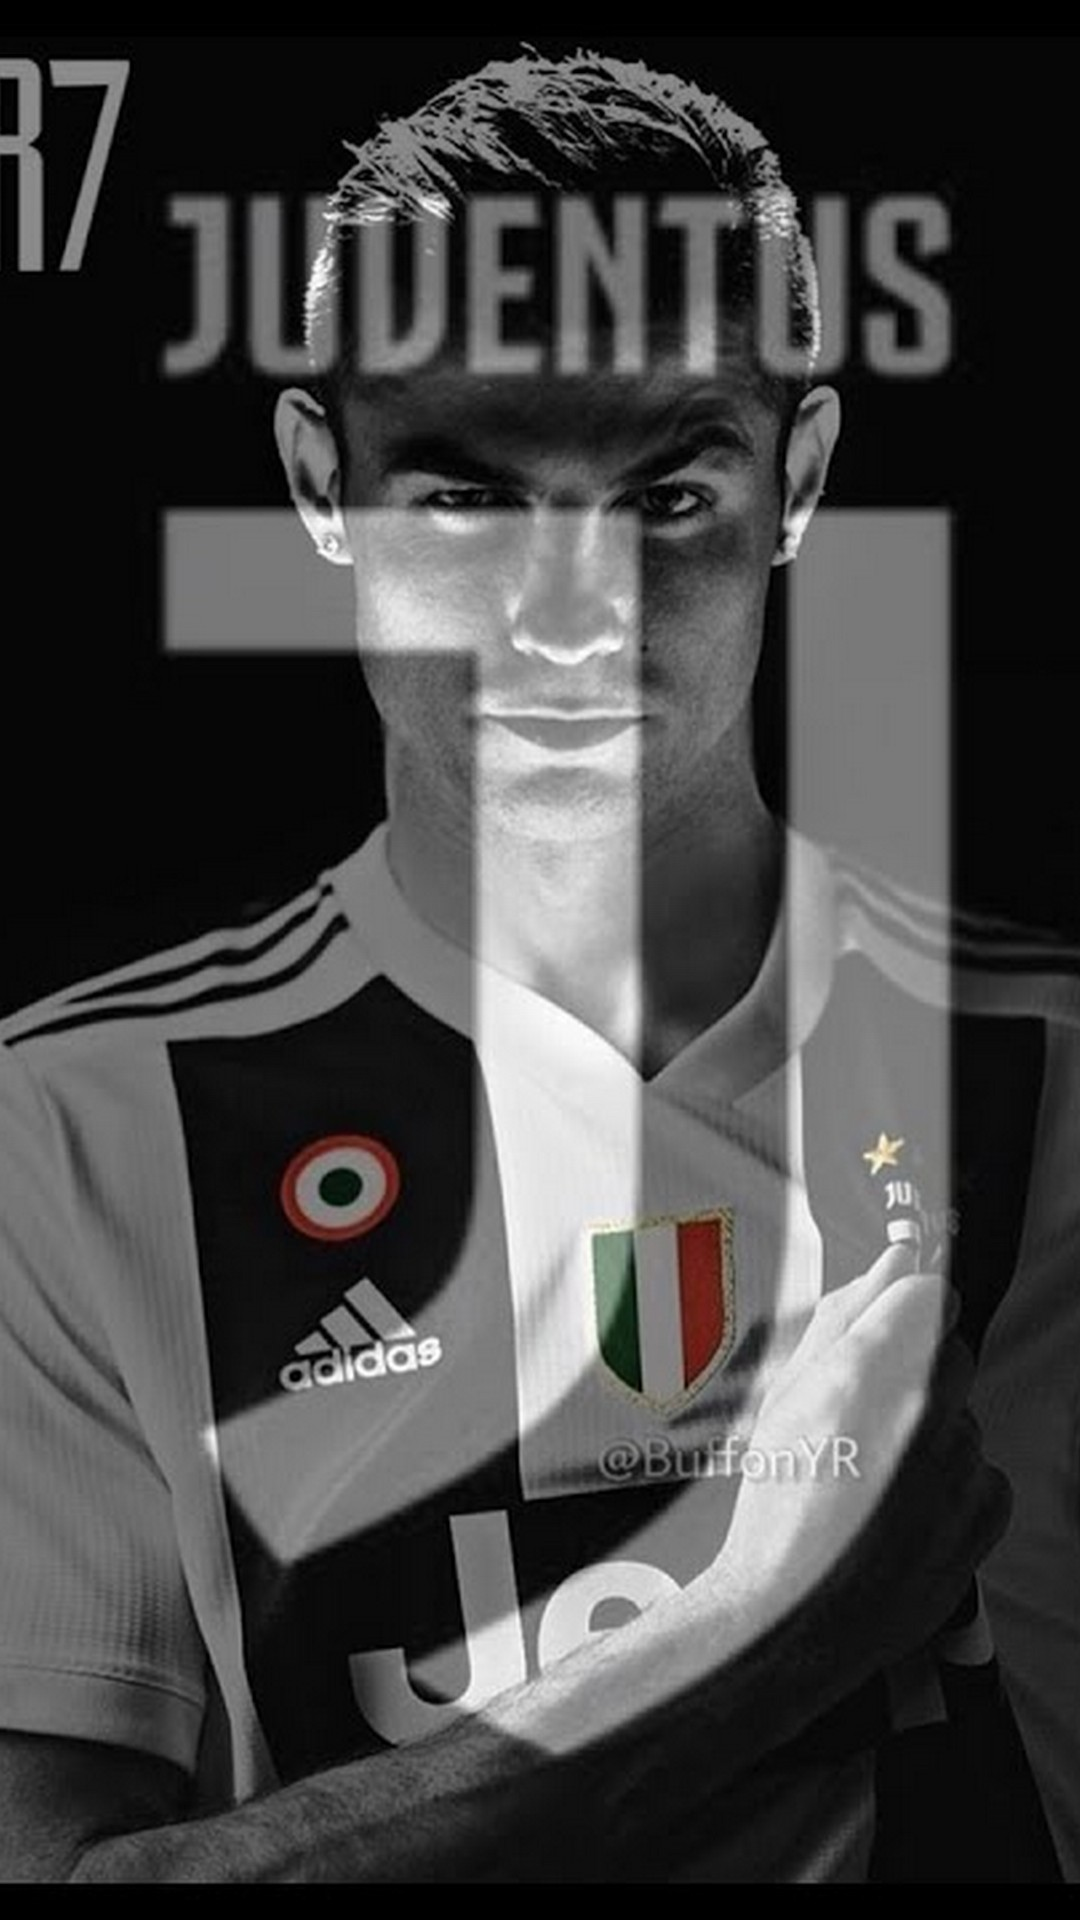 Ronaldo Juventus Lock Screen Home Screen Ronaldo Wallpaper Hd